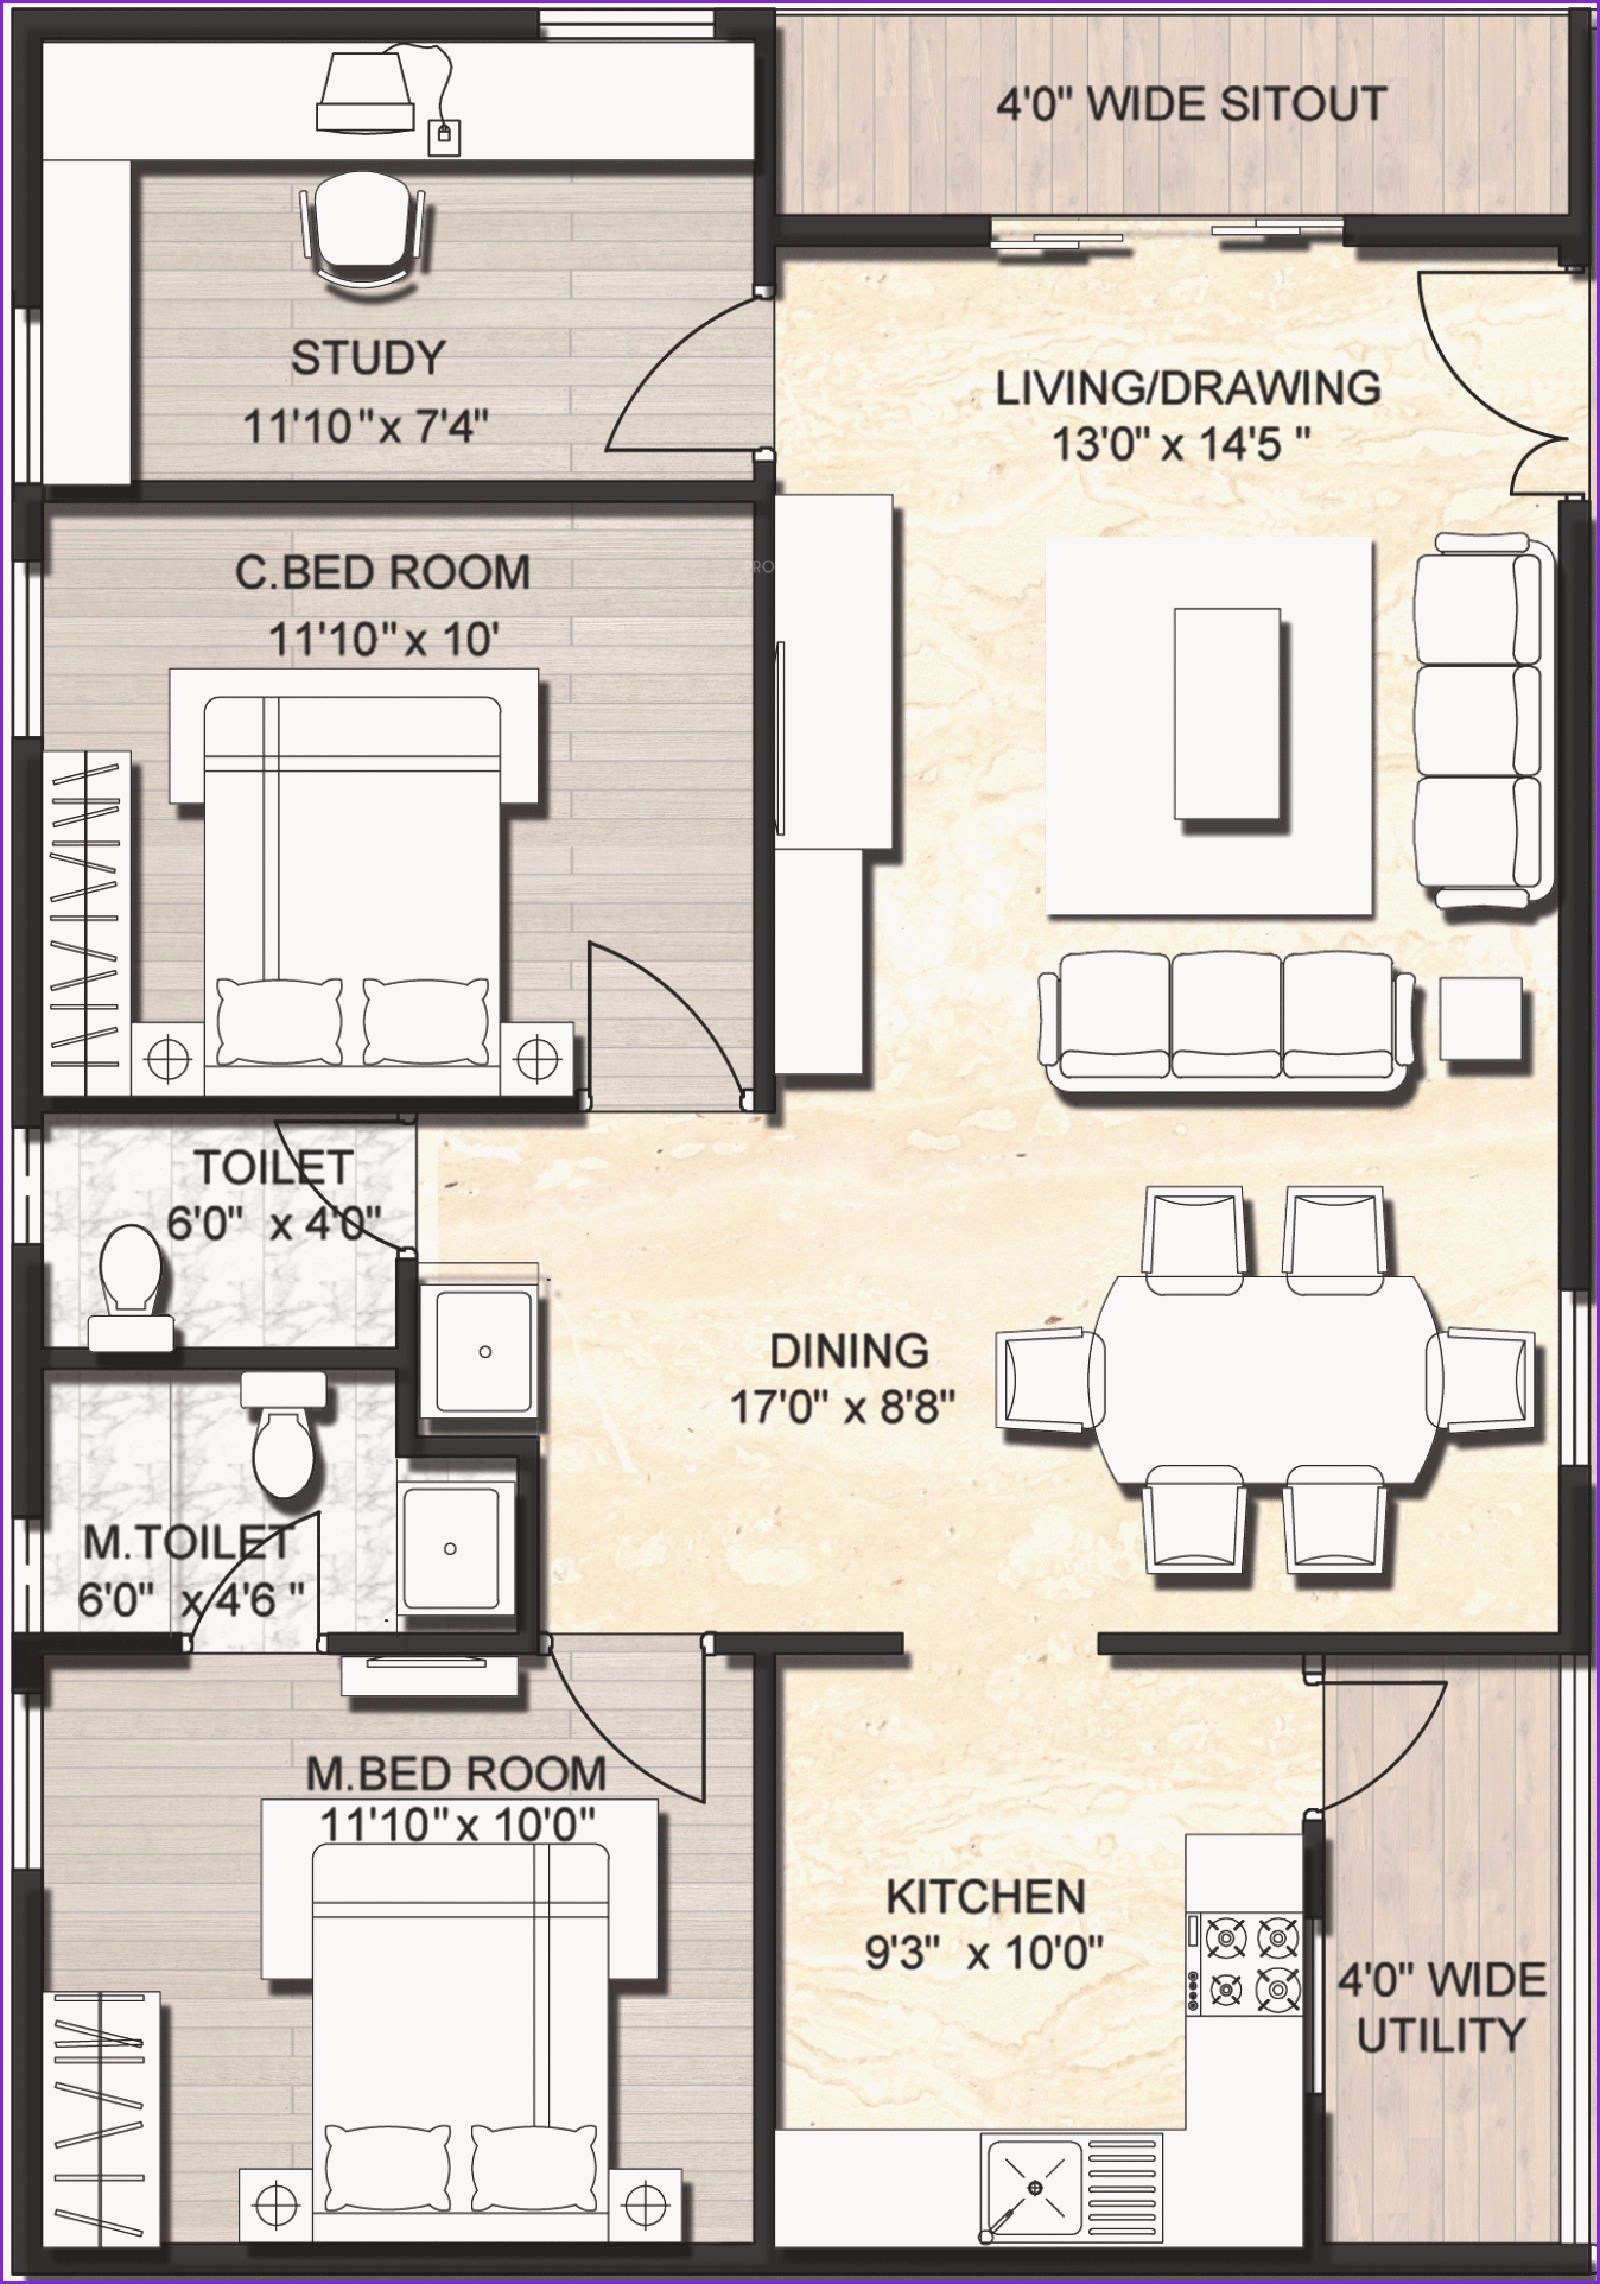 Awesome 900 Sq Ft House Plans In 2020 Model House Plan House Design Pictures 900 Sq Ft House